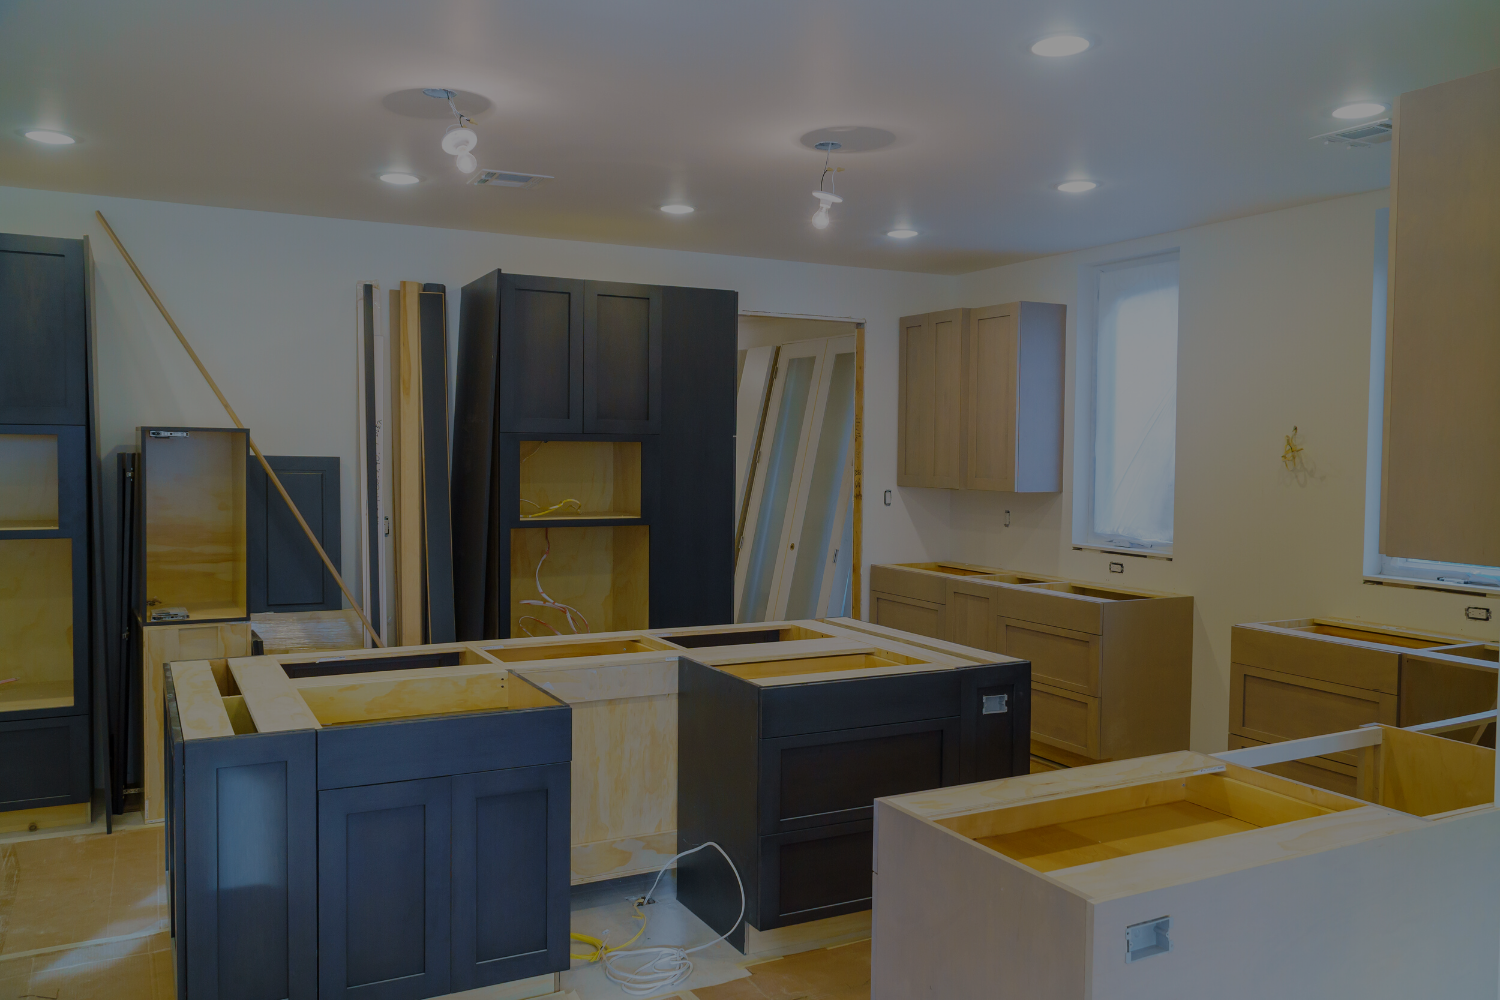 Renovation Tips for Creating a Kitchen You'll Never Grow Tired Of